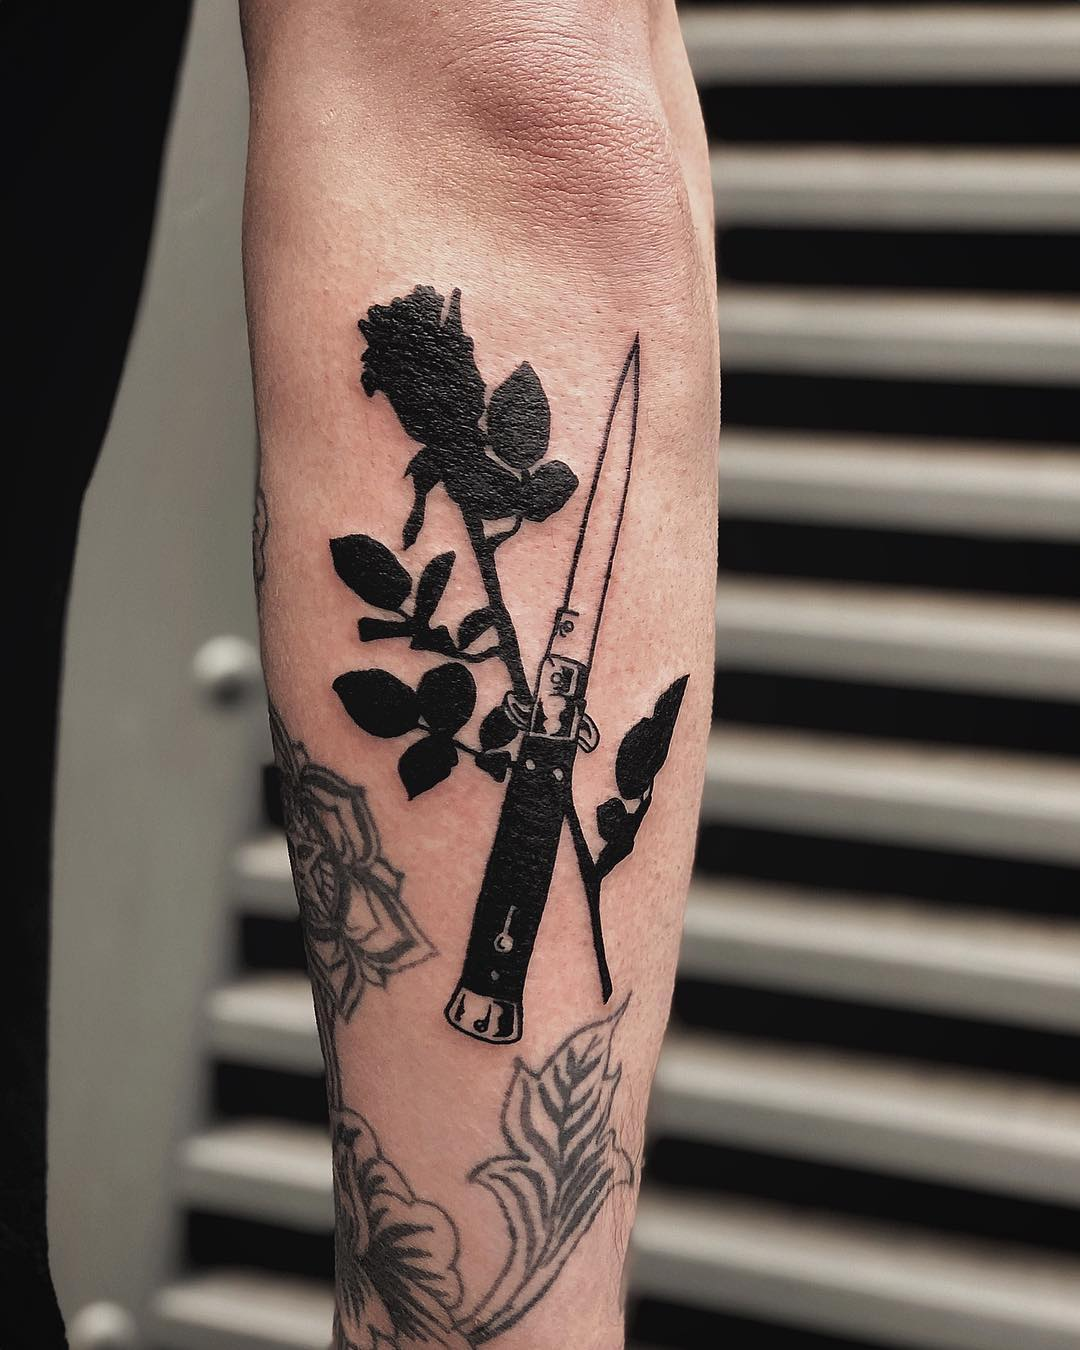 Rose and butterfly knife by Loz McLean